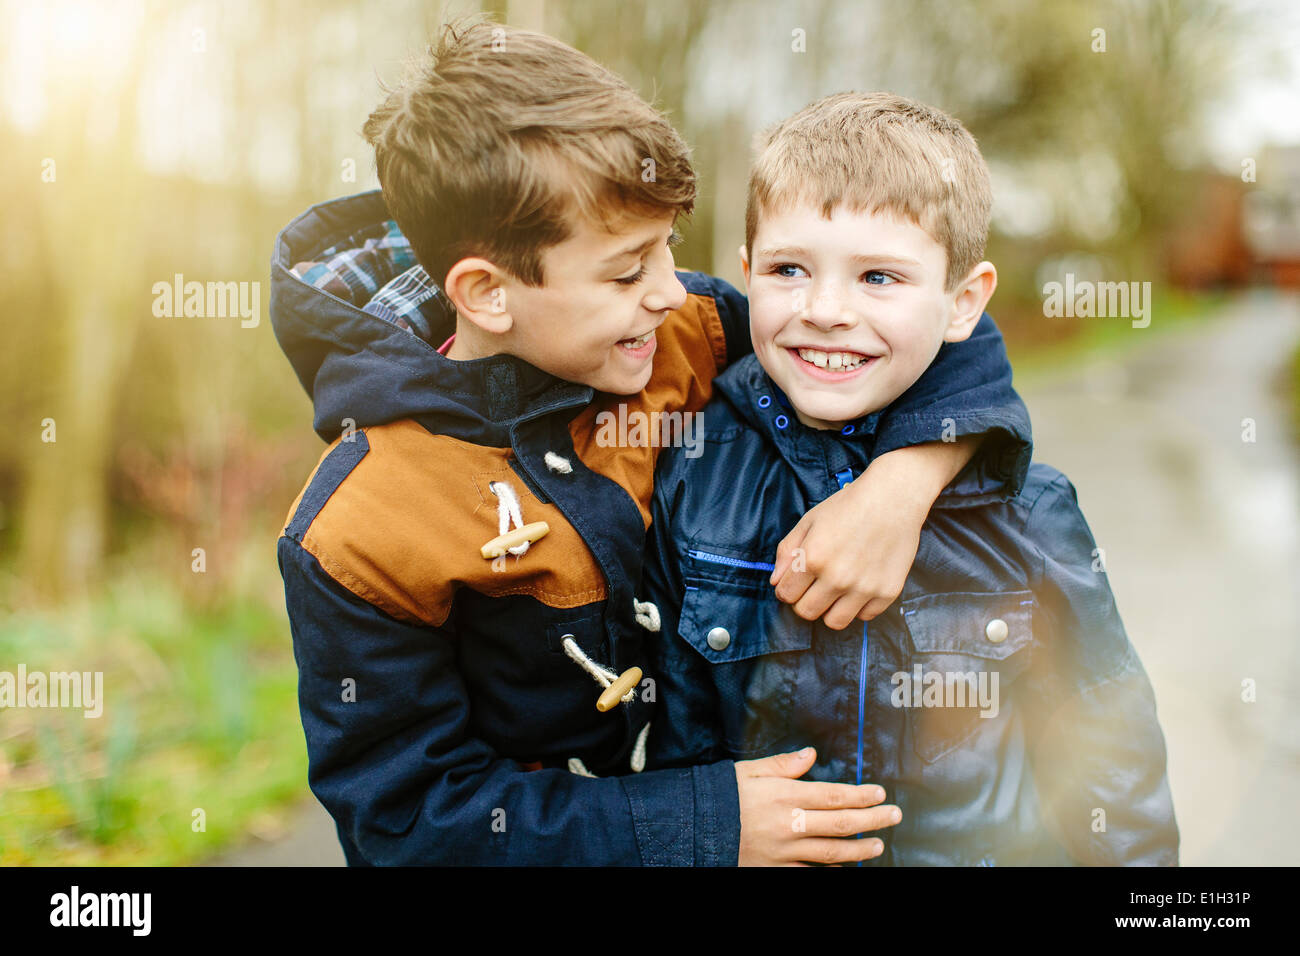 Frères hugging outdoors Photo Stock